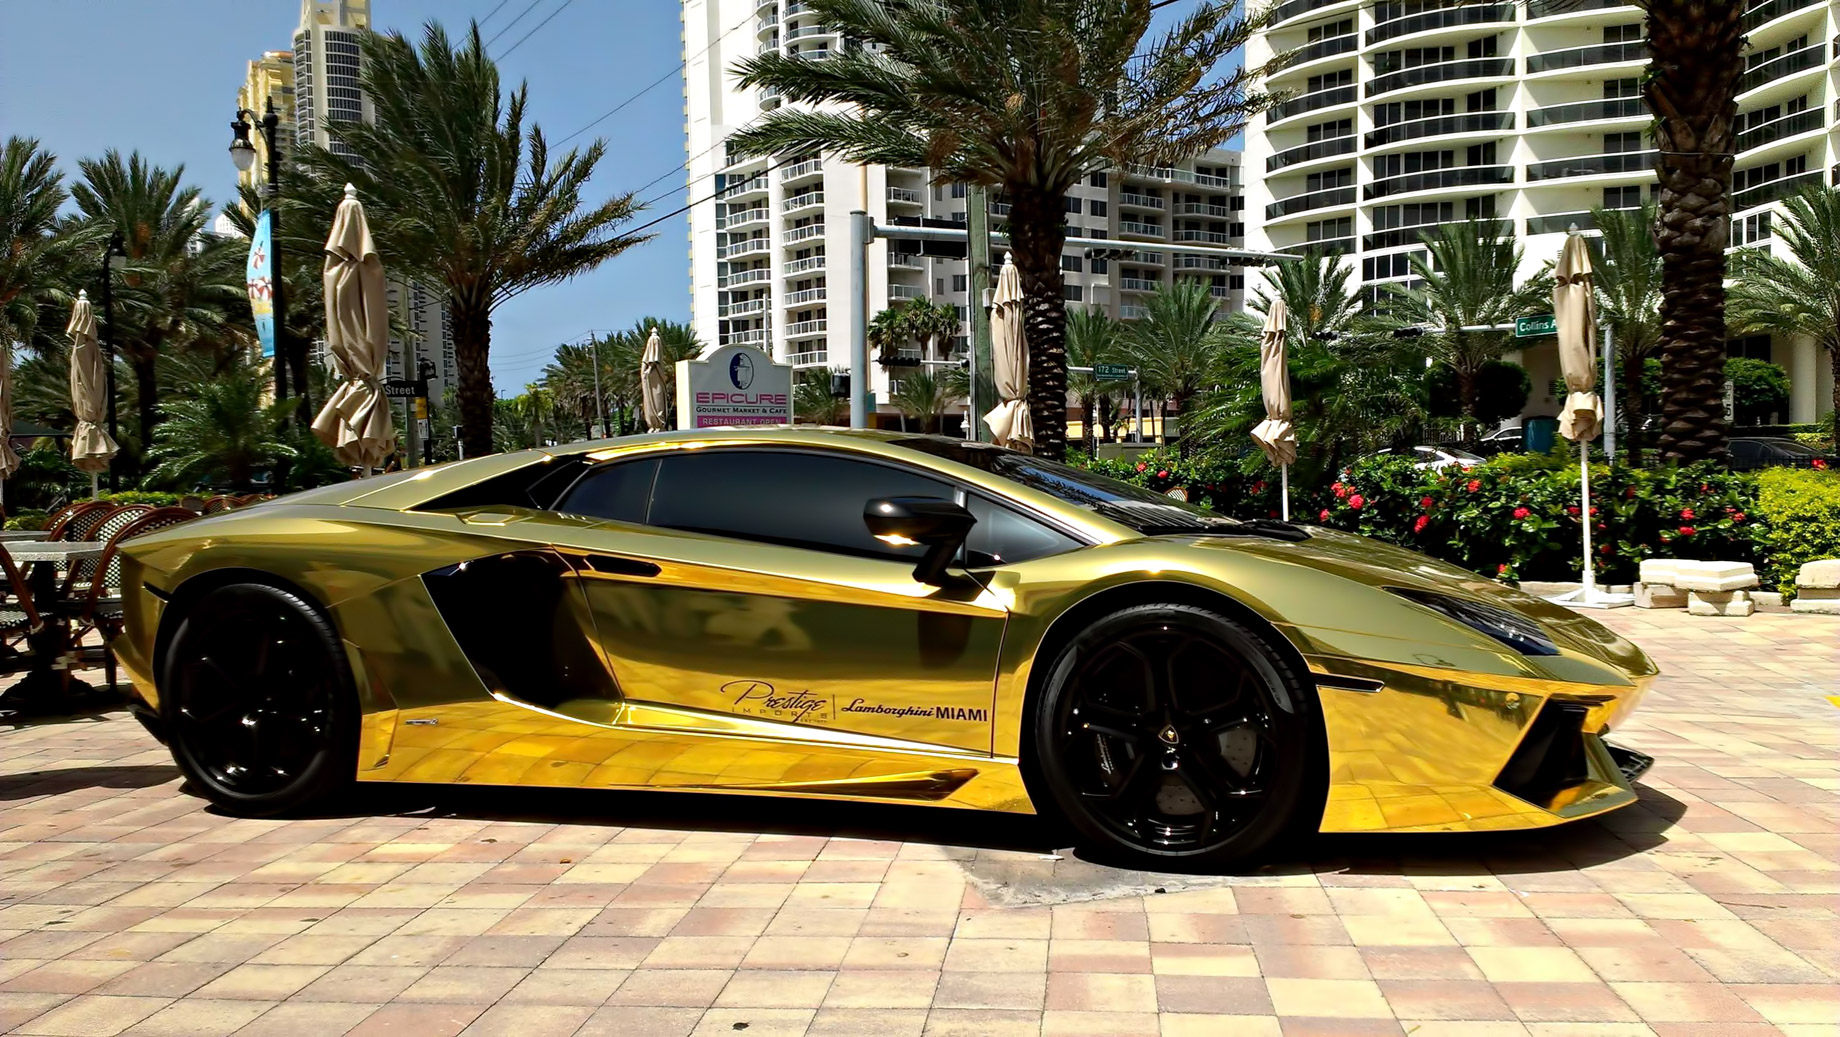 Gold Plated Lamborghini Aventador - The Top-Five Most Uber-Expensive Luxury Supercars in the World